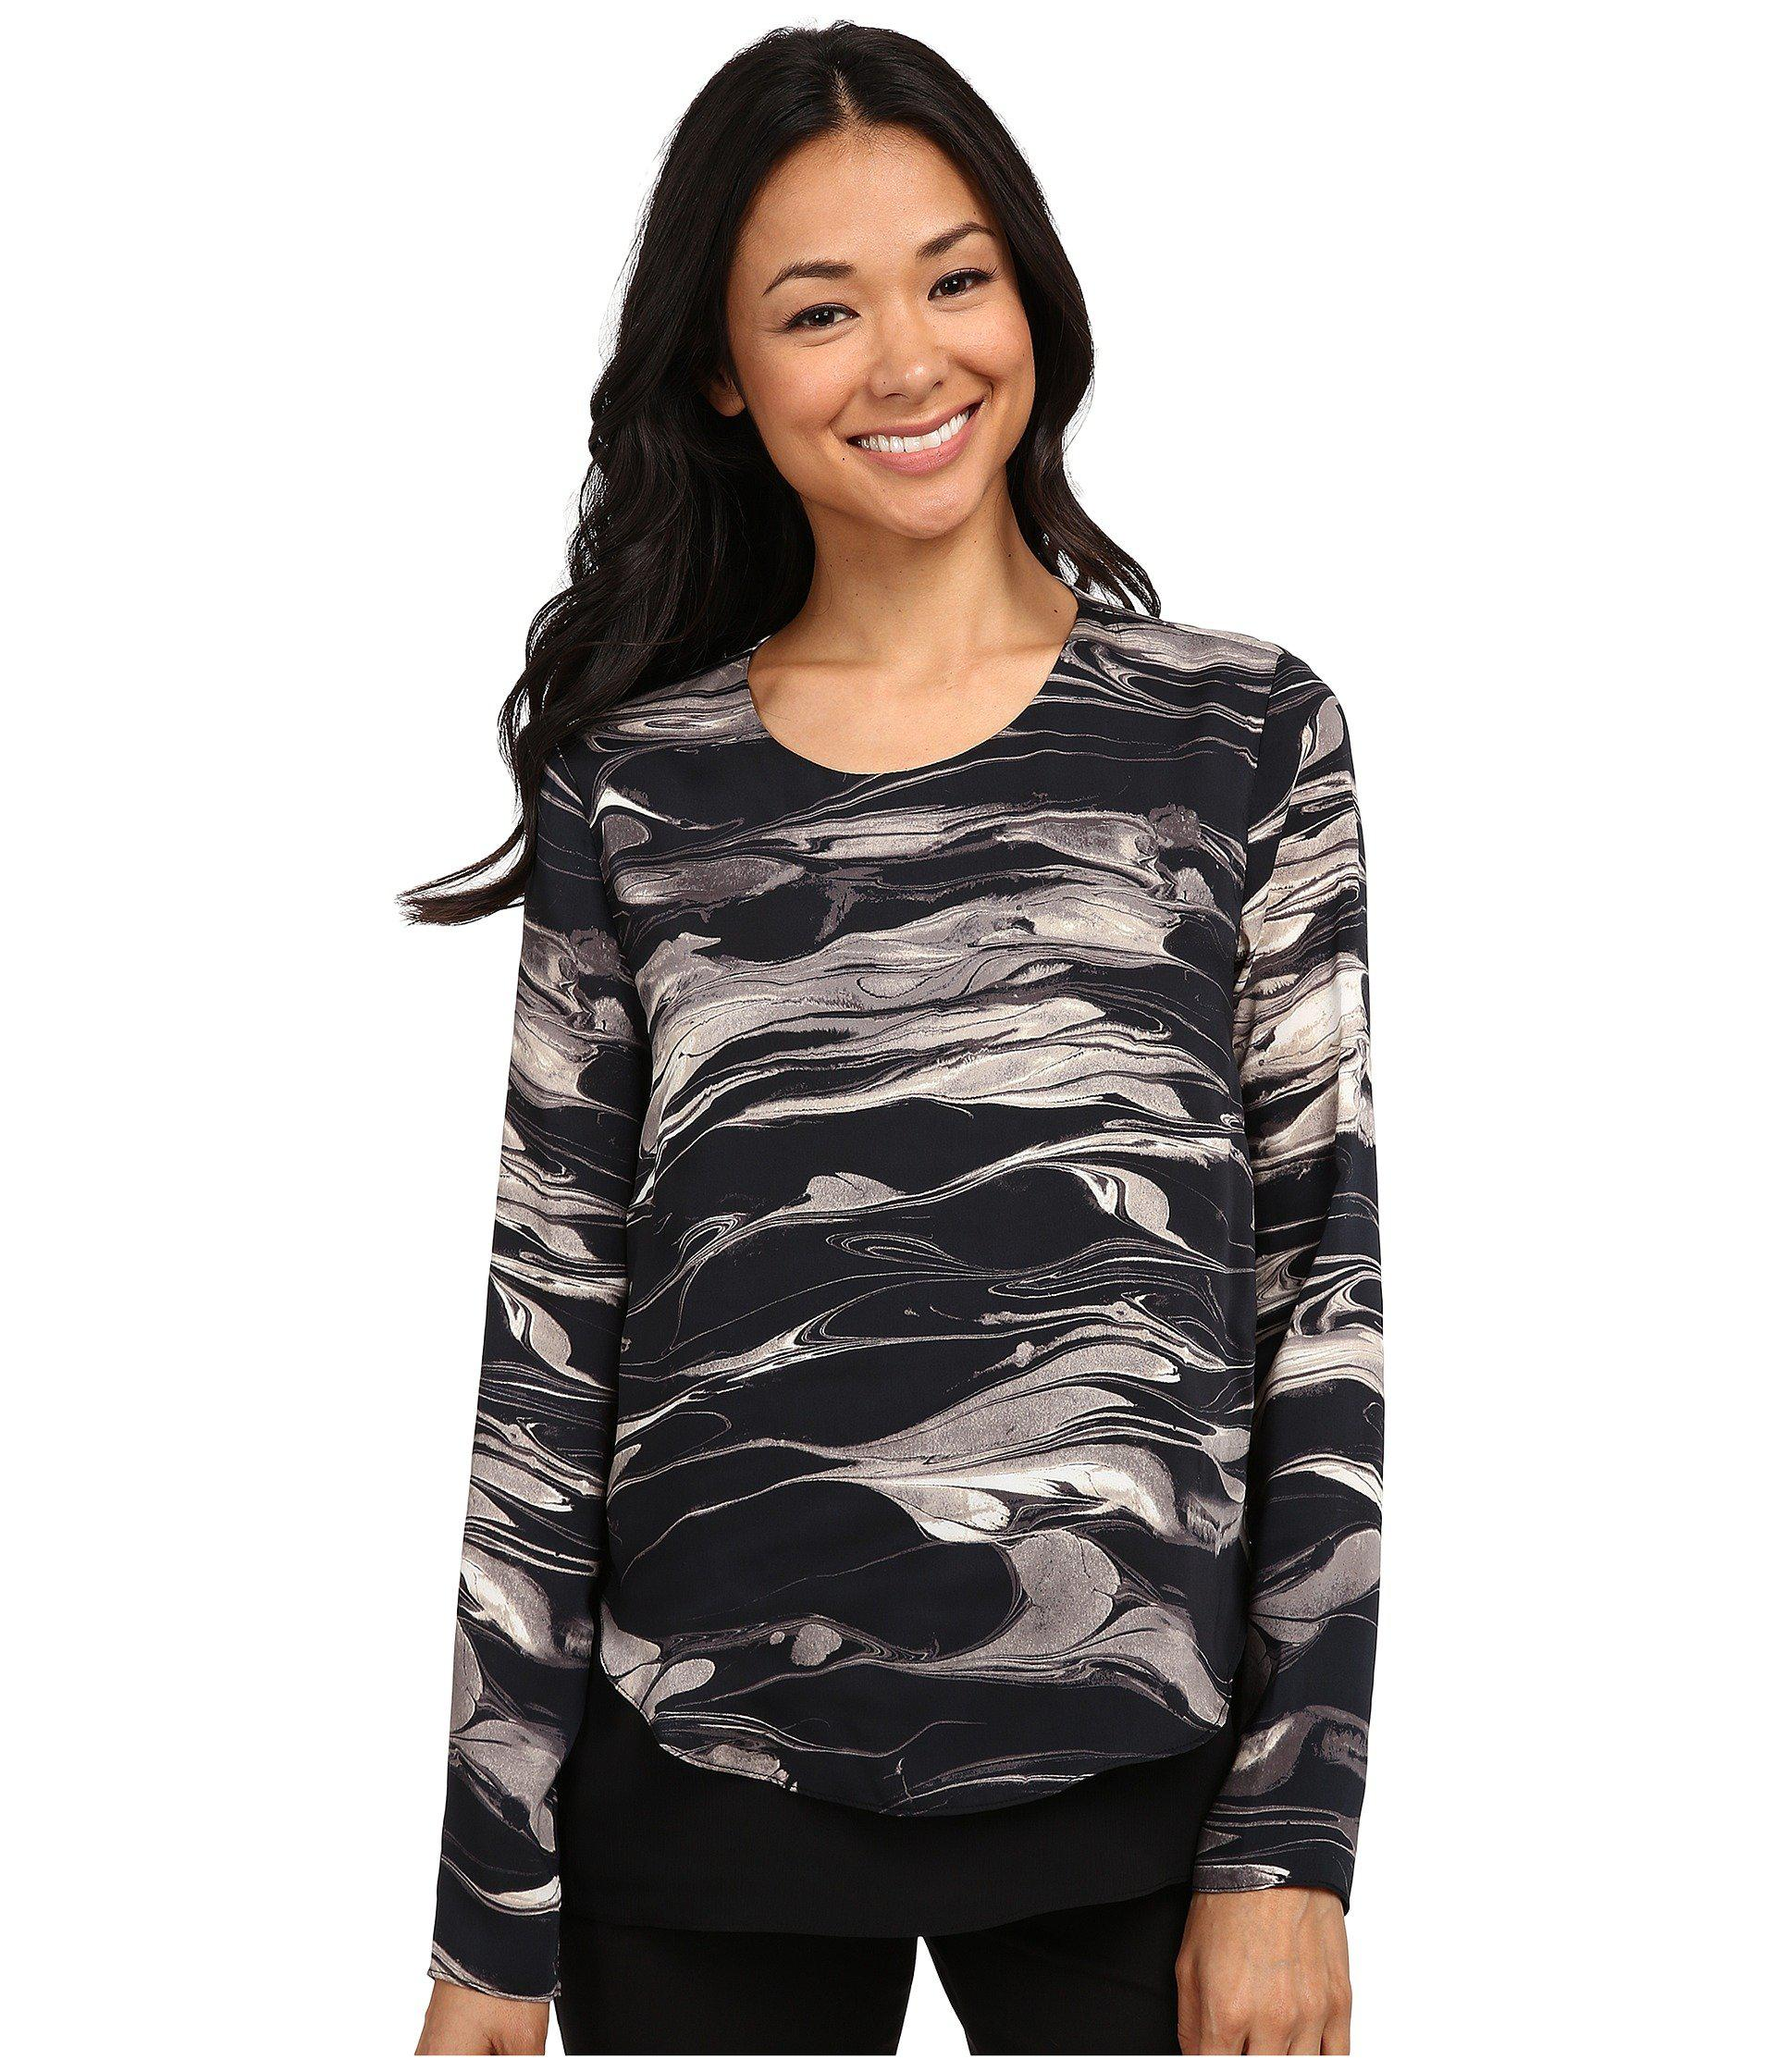 80a2d0b154f DKNY Marbled Ink Crinkle Sheer Double Layer Blouse in Black - Lyst